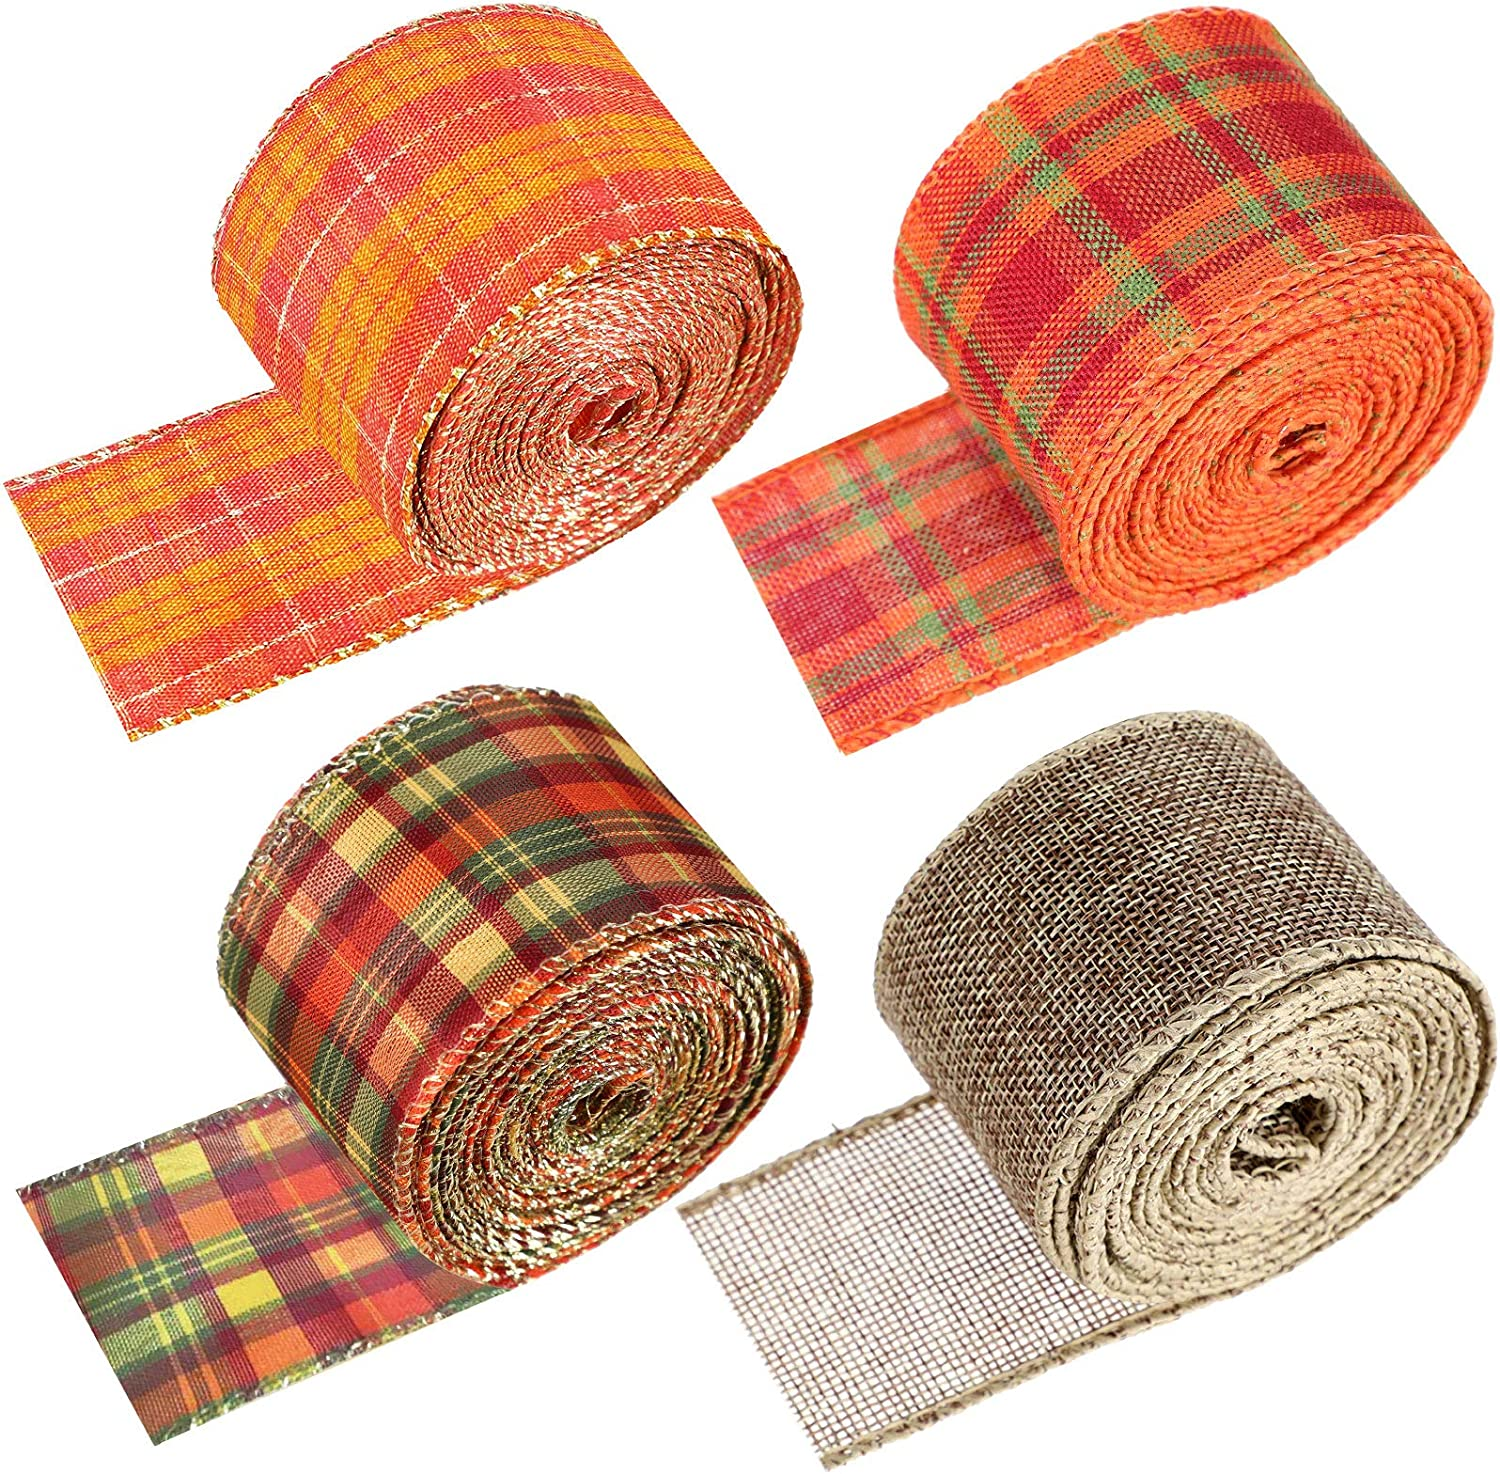 4 Rolls Fall Decor Ribbon Plaid Wired Edge Ribbons 2 Inches, Autumn Harvest Ribbon for Thanksgiving Halloween Pumpkin Decorating and Crafts